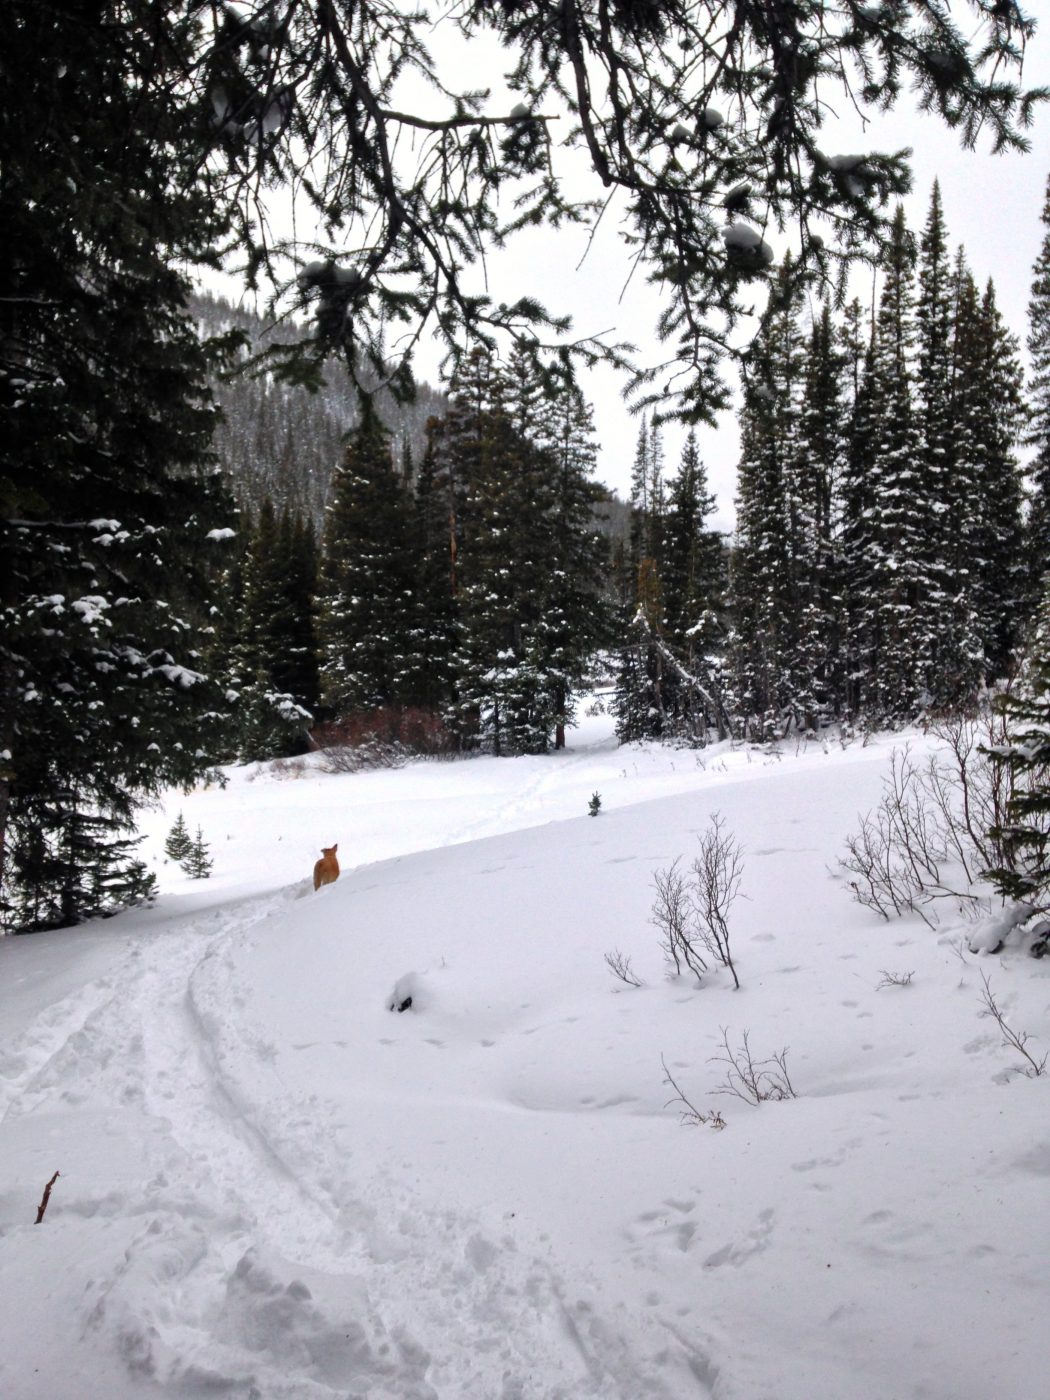 snowshoeing with a dog - down the trail